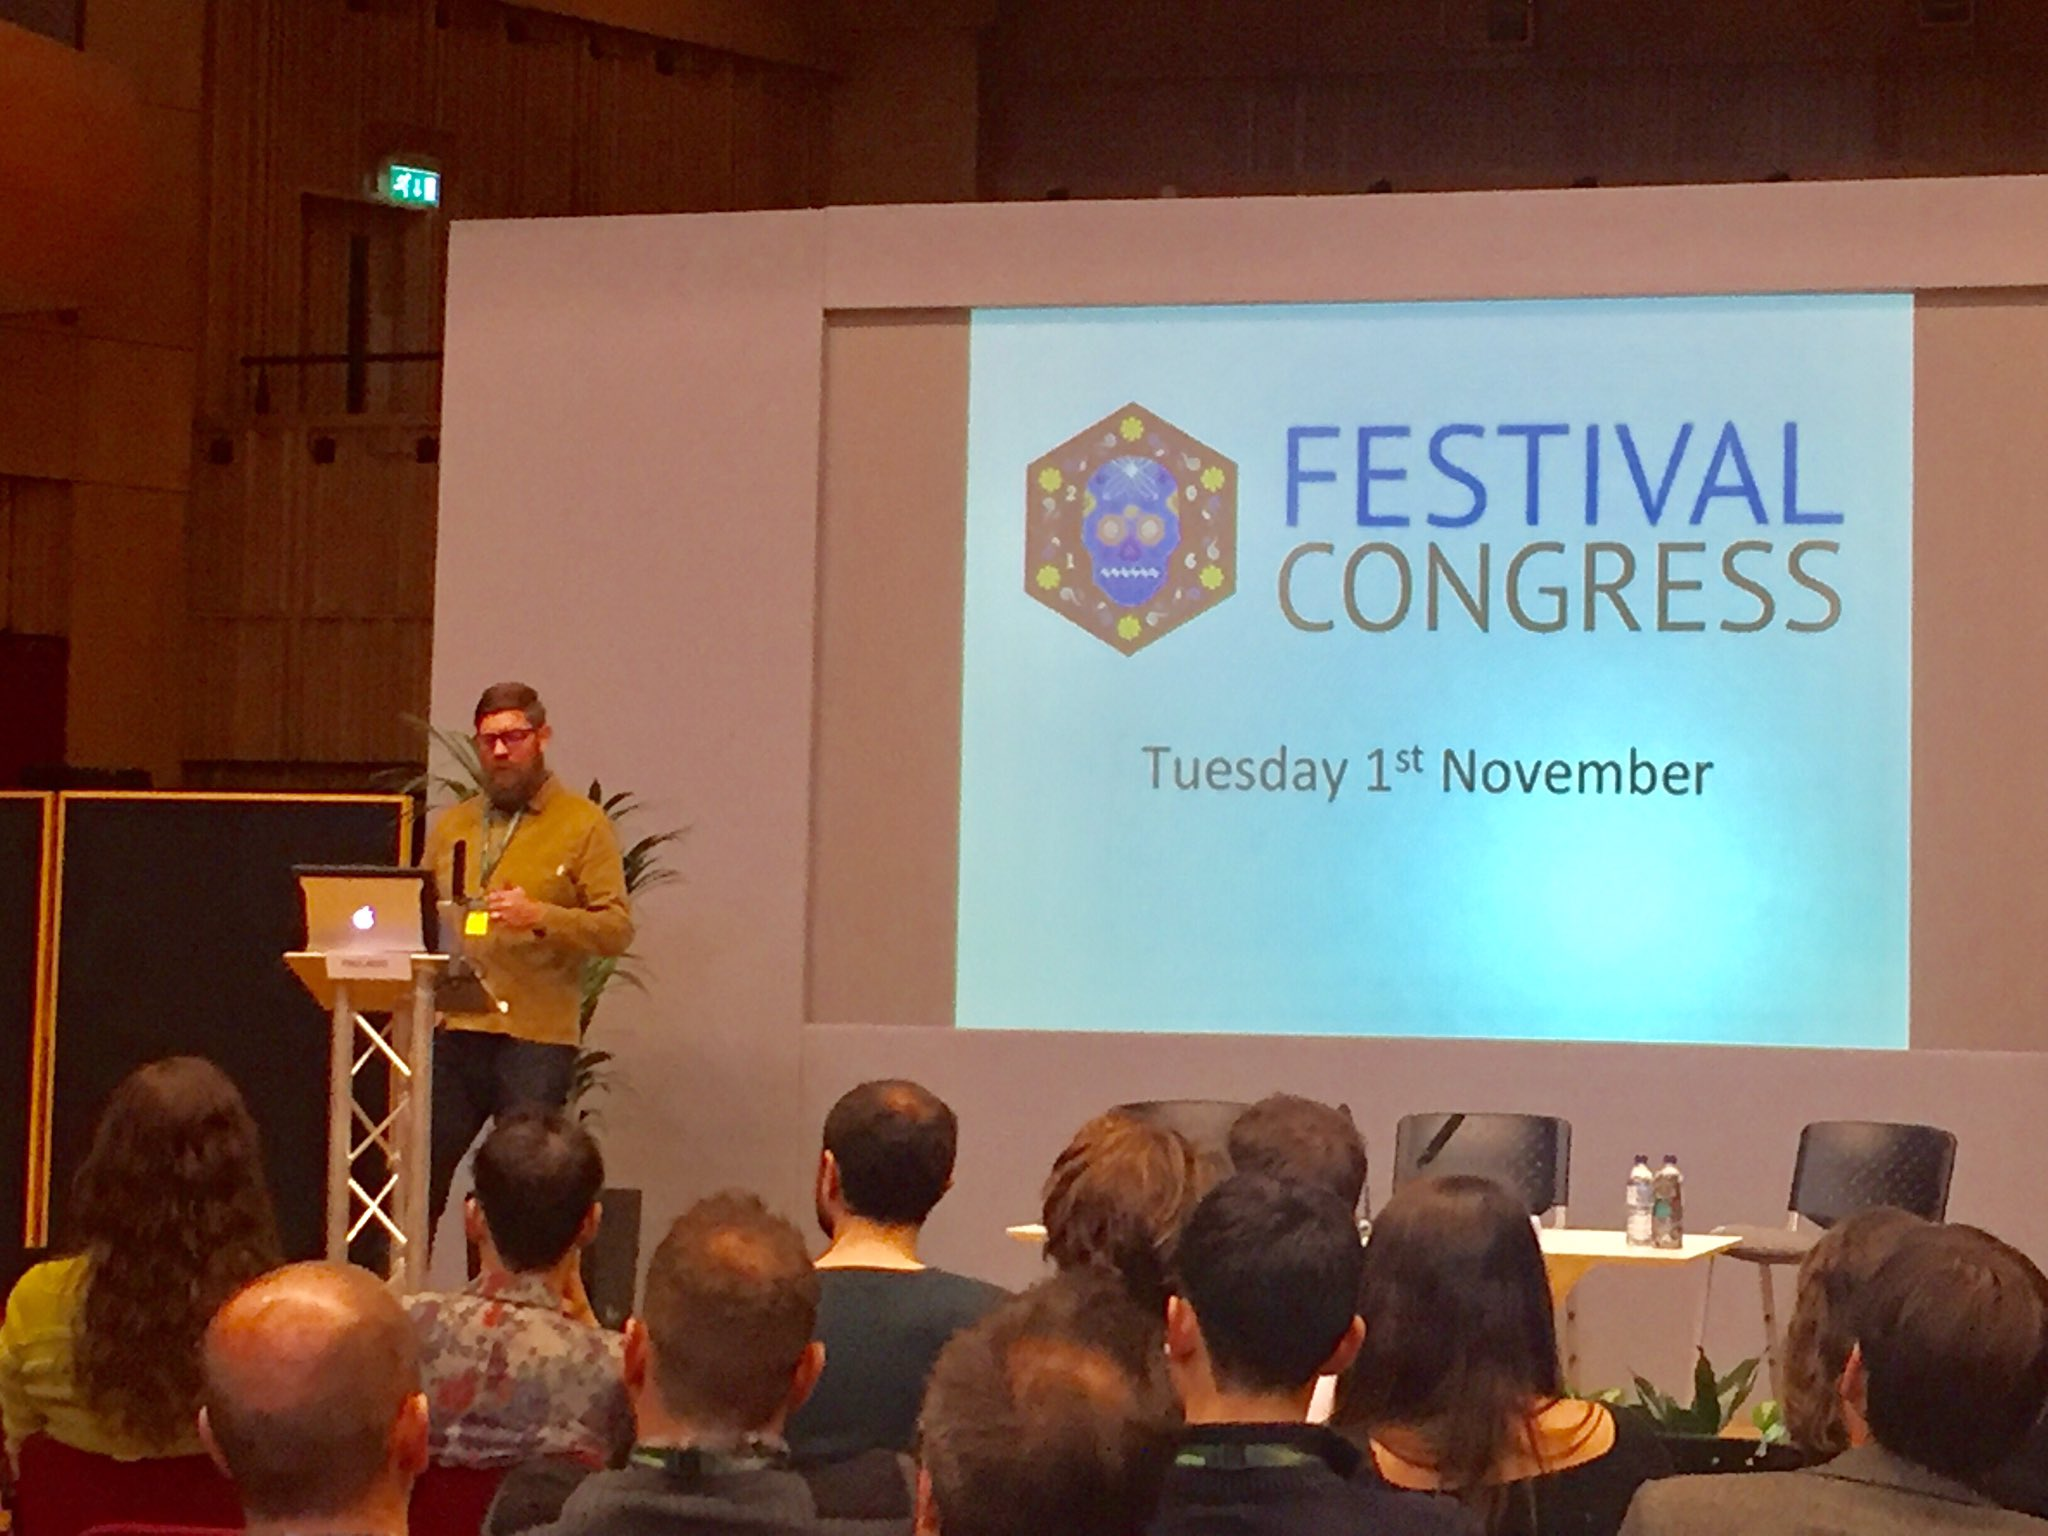 We're in Cardiff for @AIF_UK's @FestCongress today, discussing the issues facing independent festivals. https://t.co/QfFQK8SPqj